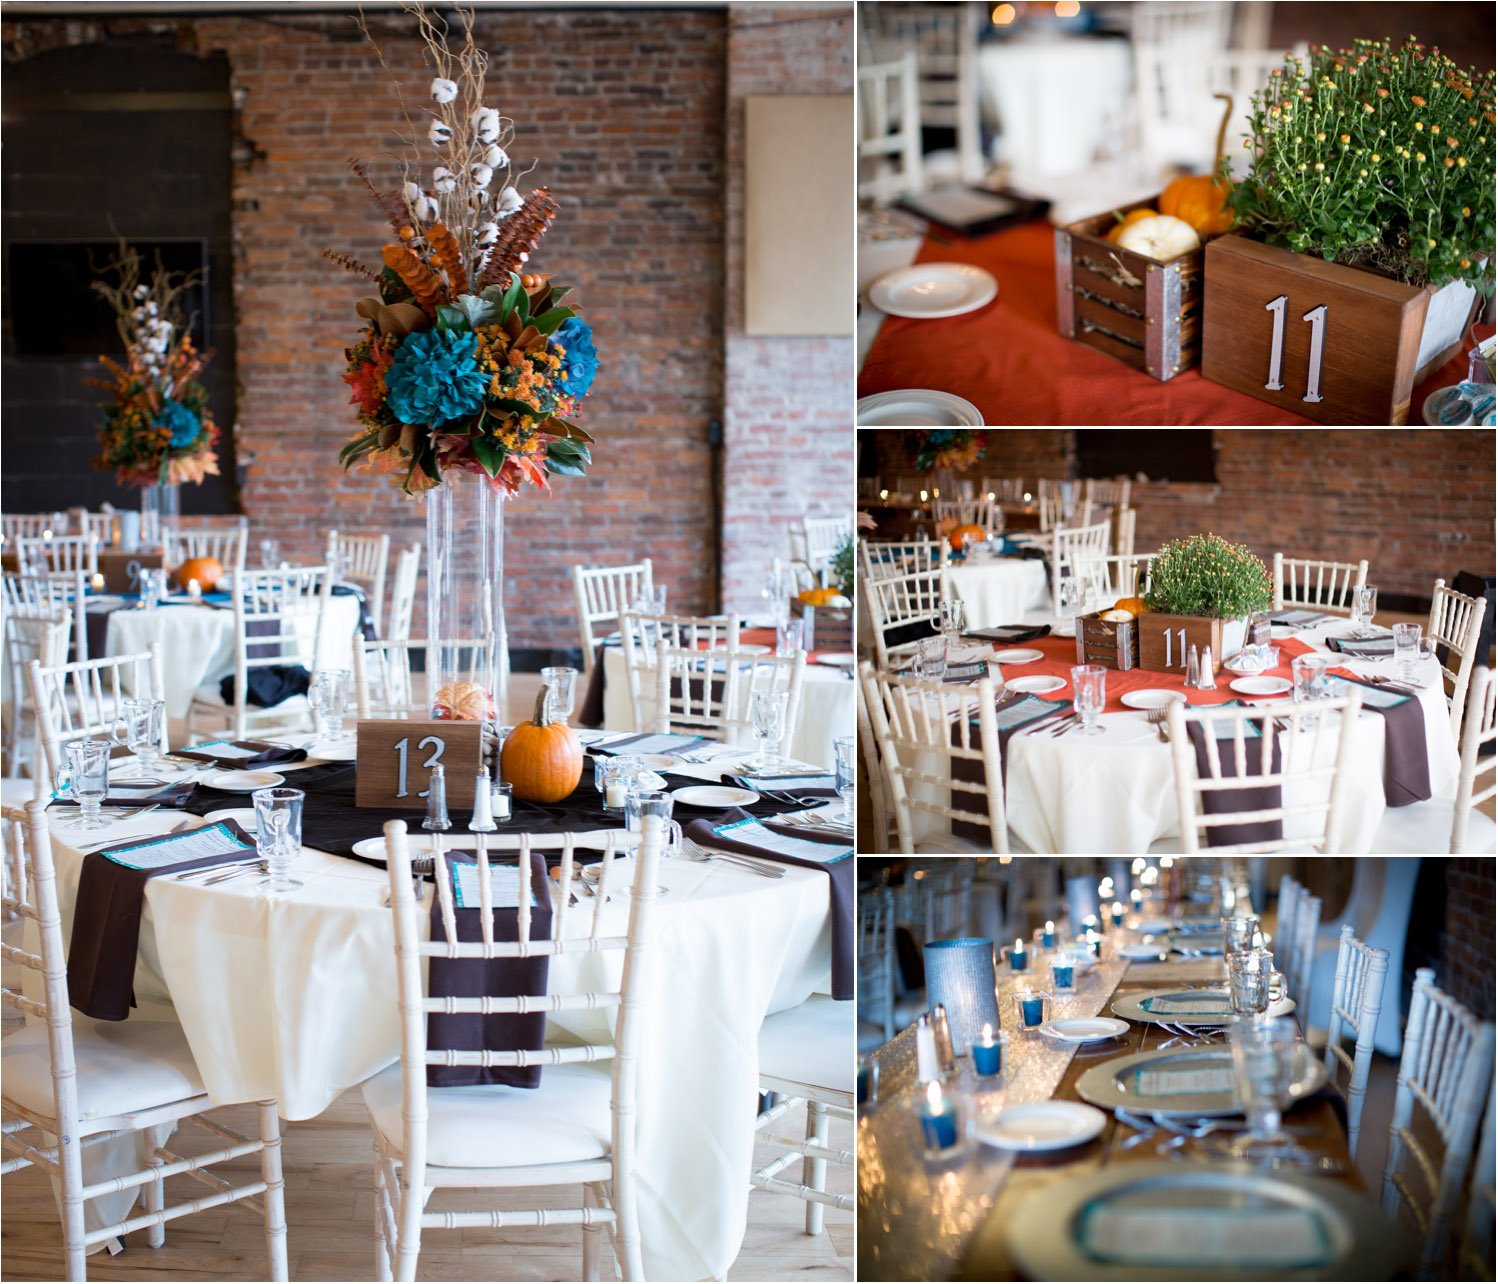 22-loft-at-studio-j-stillwater-mn-wedding-reception-tablescapes-details-fall-colors-raw-cotton-brown-linens-minnesota-photographer-mahonen-photography.jpg